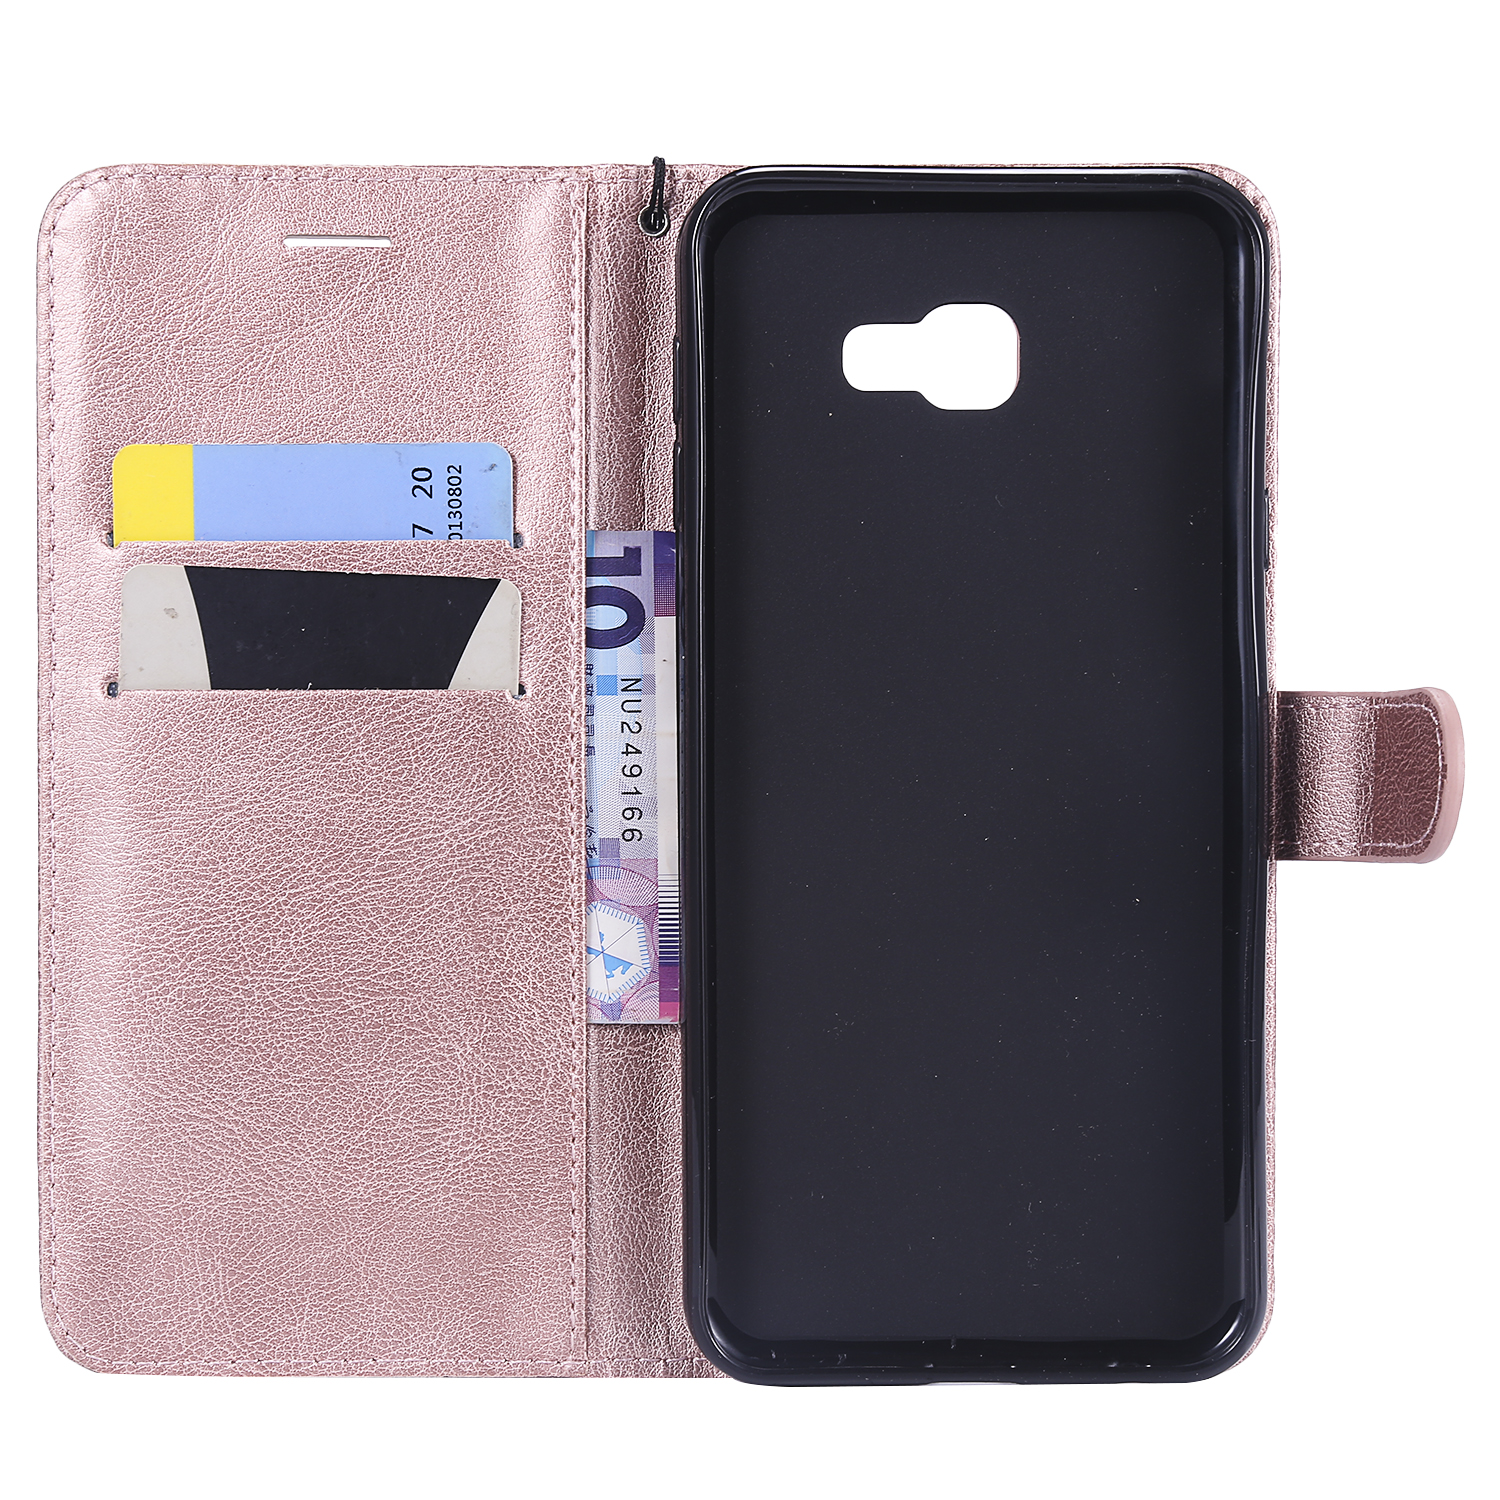 Luxury Simple Color Cases For Samsung Galaxy J2 Core J4 Prime J6 Plus A6S A7 A9 2018 S10E S10 Plus Card Slot Phone Cover P06Z in Flip Cases from Cellphones Telecommunications